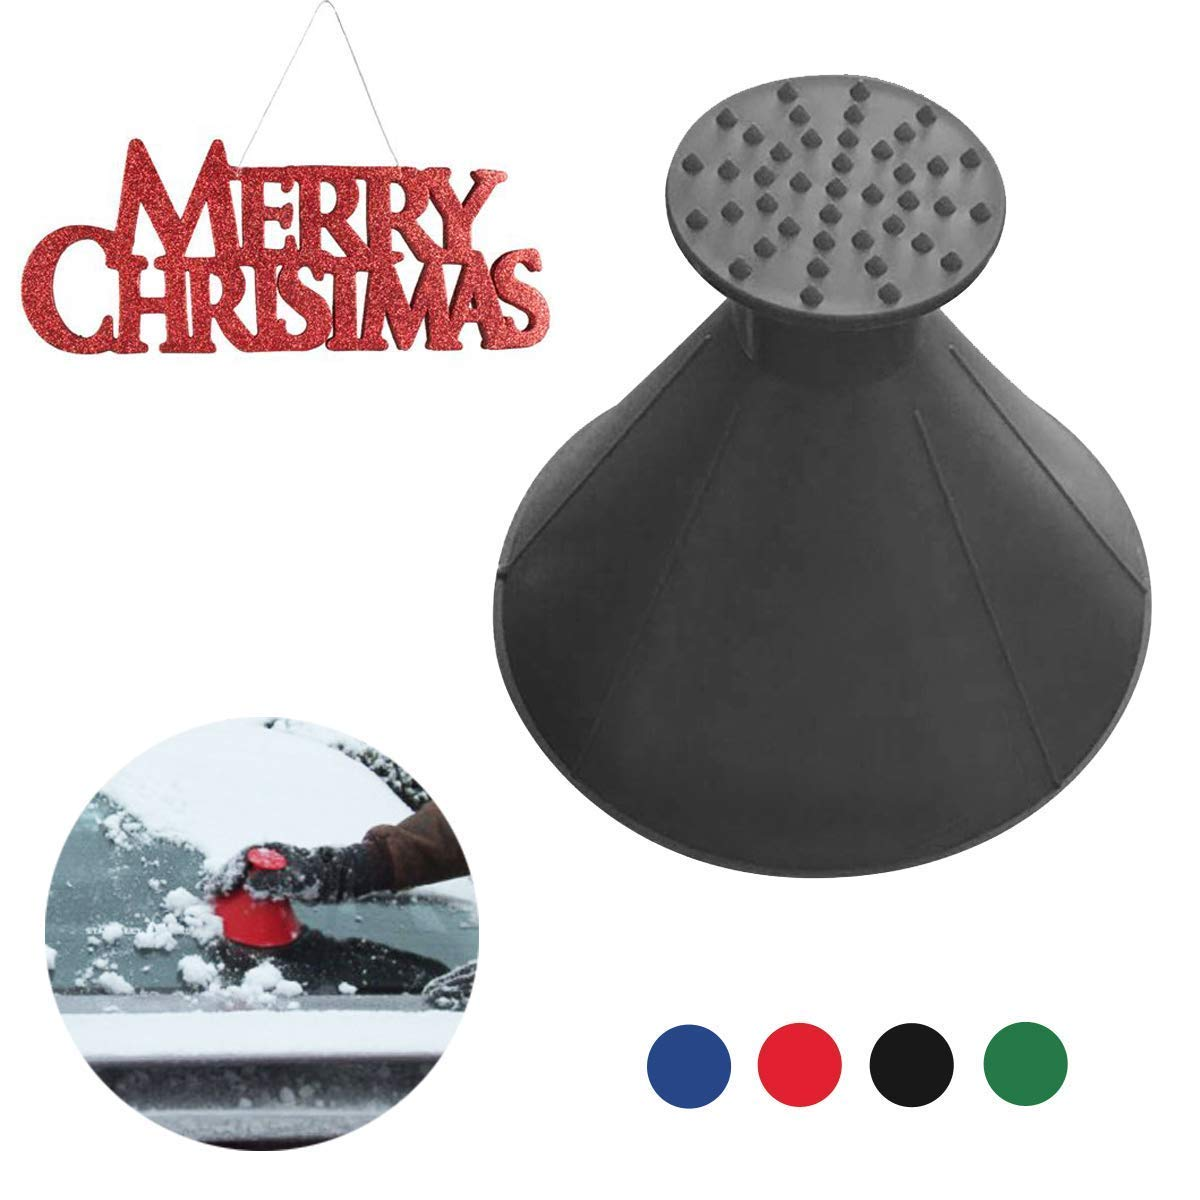 Magic Scrape A Round Cone Shaped Ice Scraper Car Windshield Snow Cone Windshield Snowhovel Tool Will Scrape Pesky Frost and Ice from Windscreens and Side Windows with Ease (Blue) 7-18Day Delivery Great Home